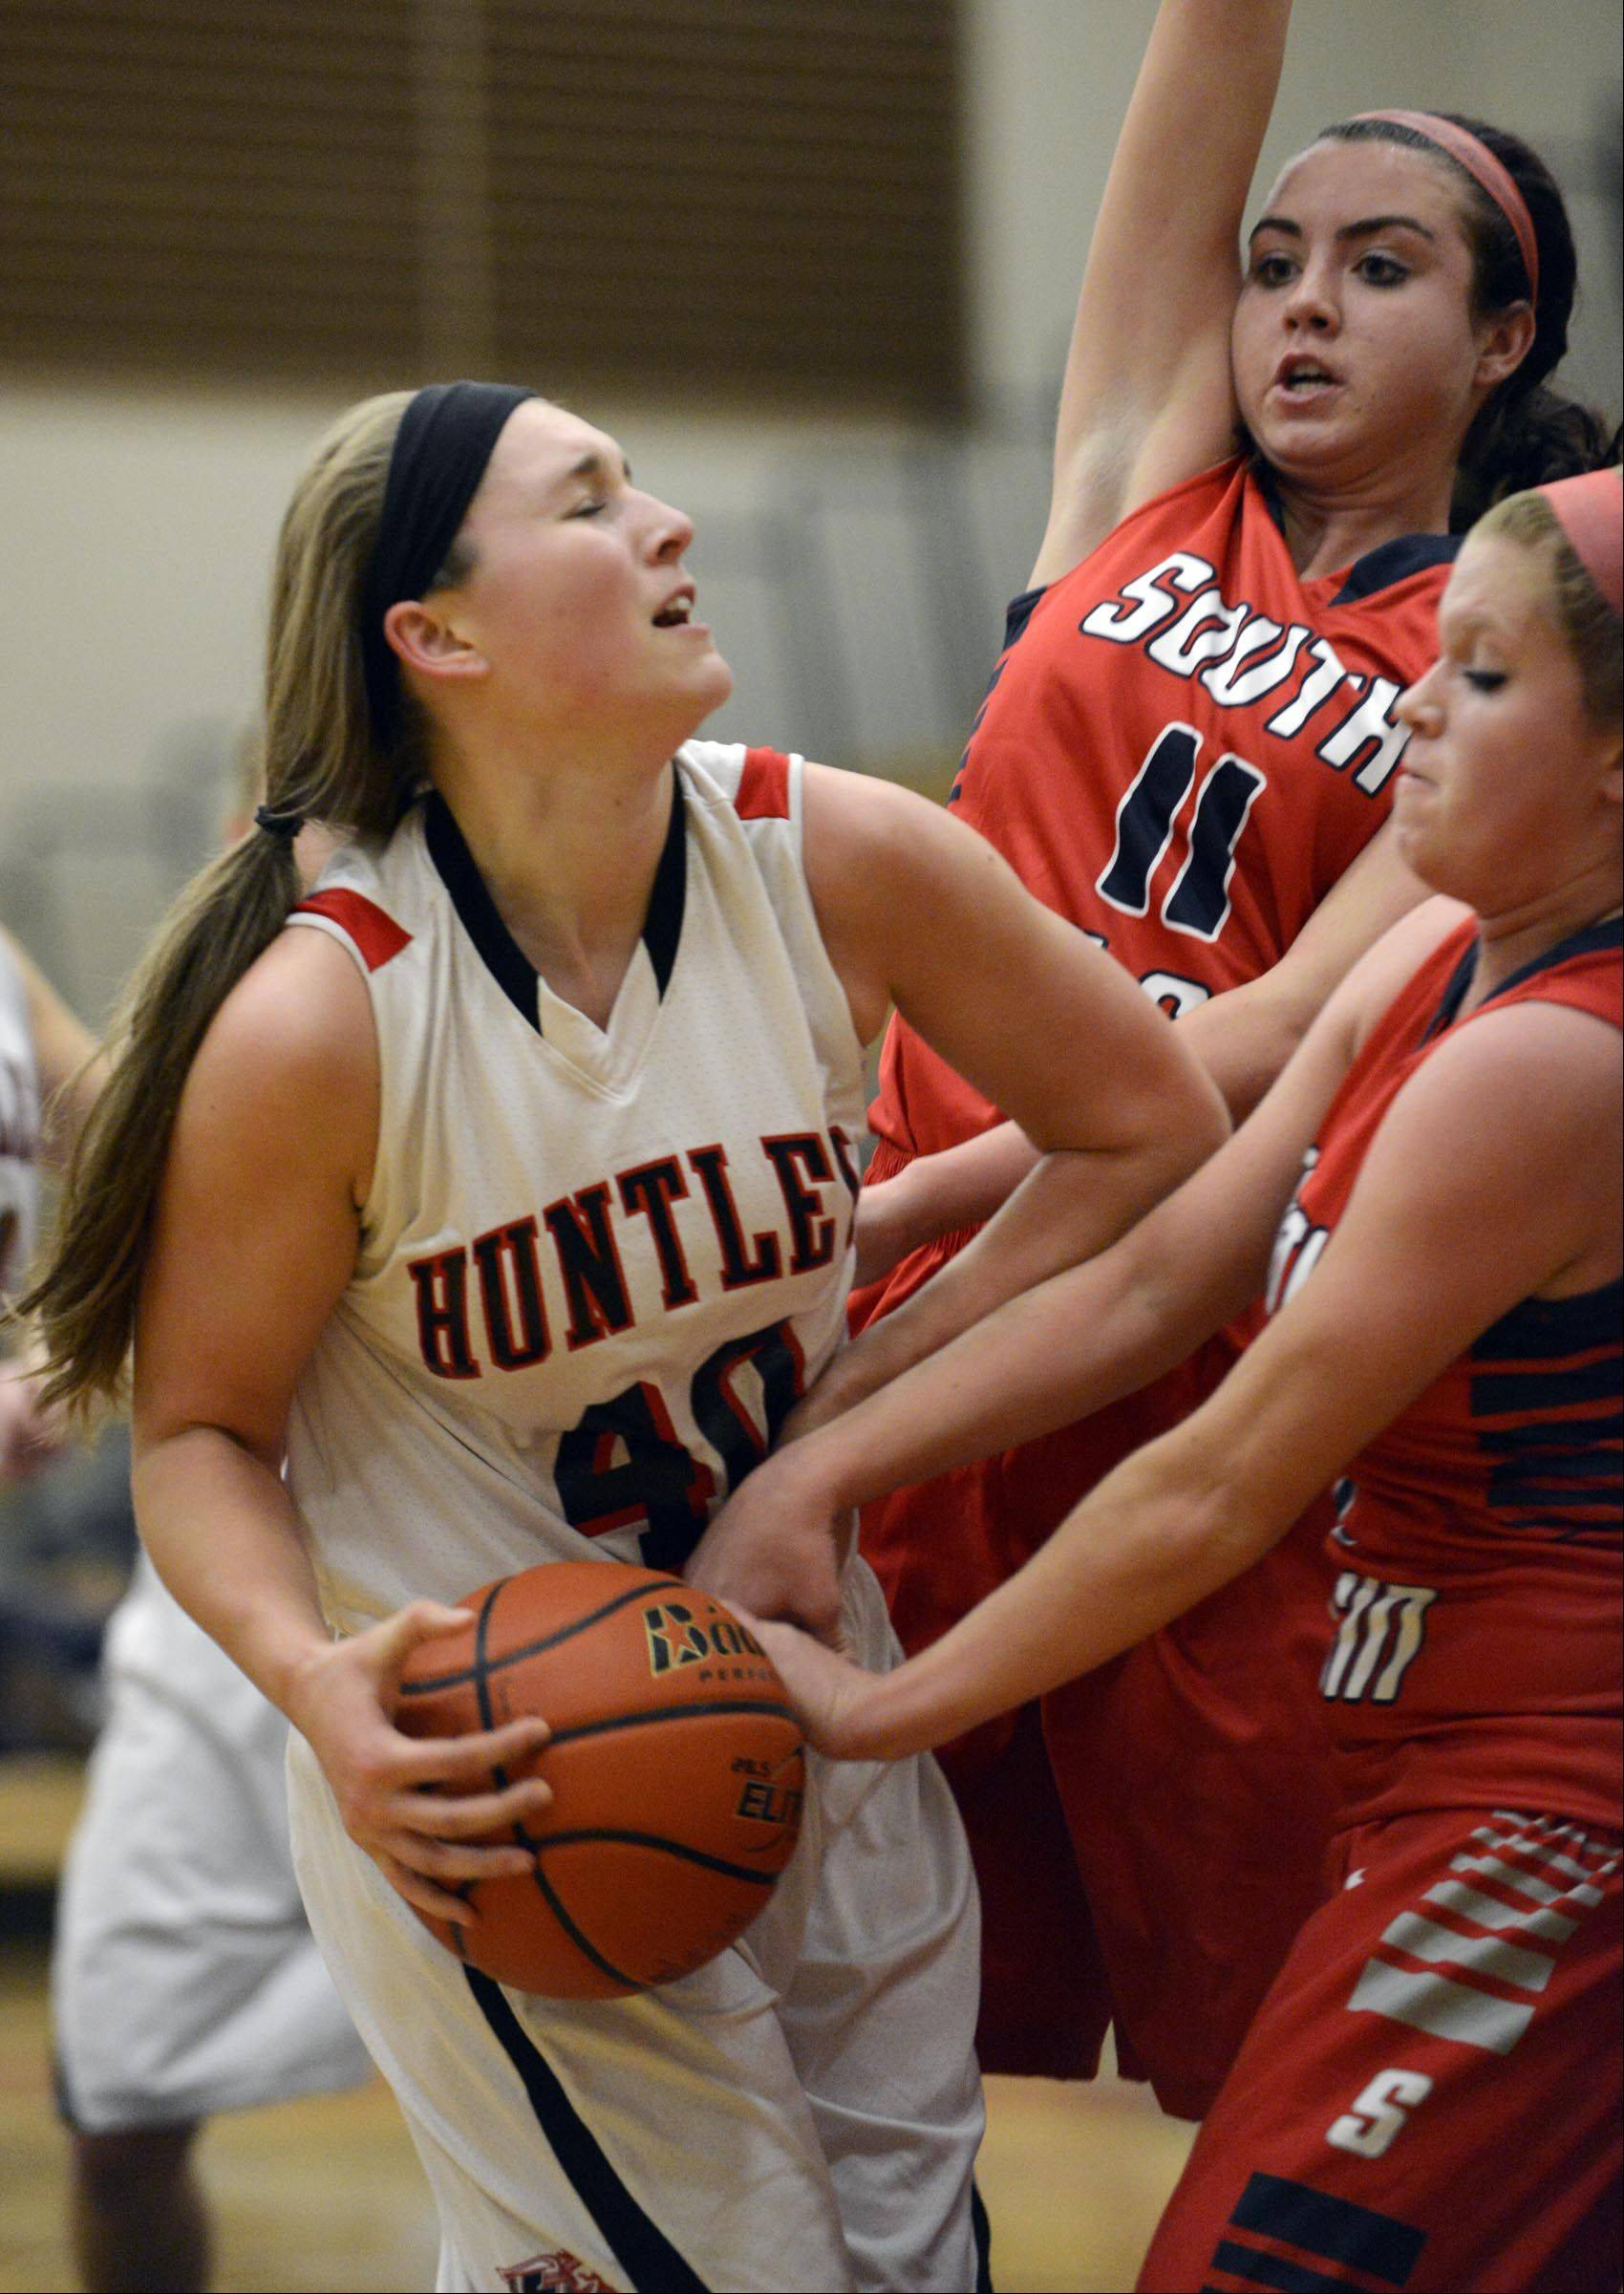 South Elgin's Anna Tracy has the ball stripped by Huntley's Sam Andrews Wednesday in Huntley as South Elgin's Delaney Kelleher defends.